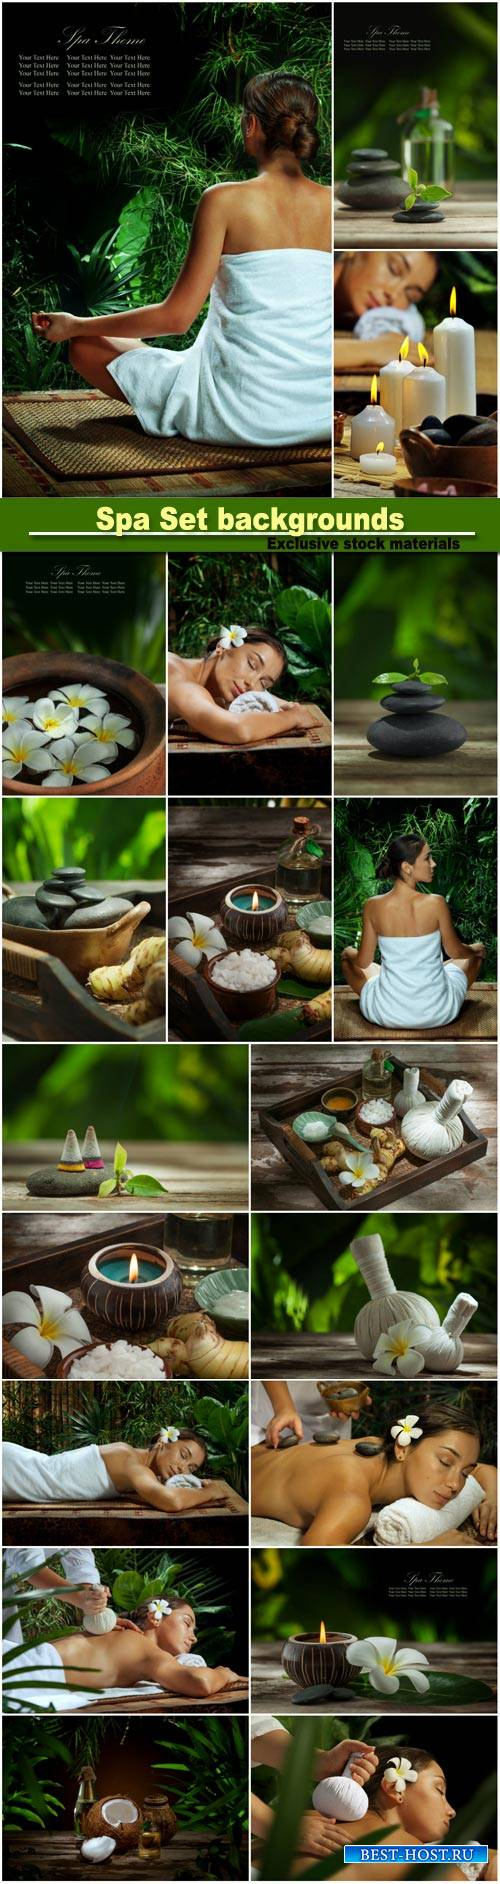 Spa Set backgrounds, woman doing massage